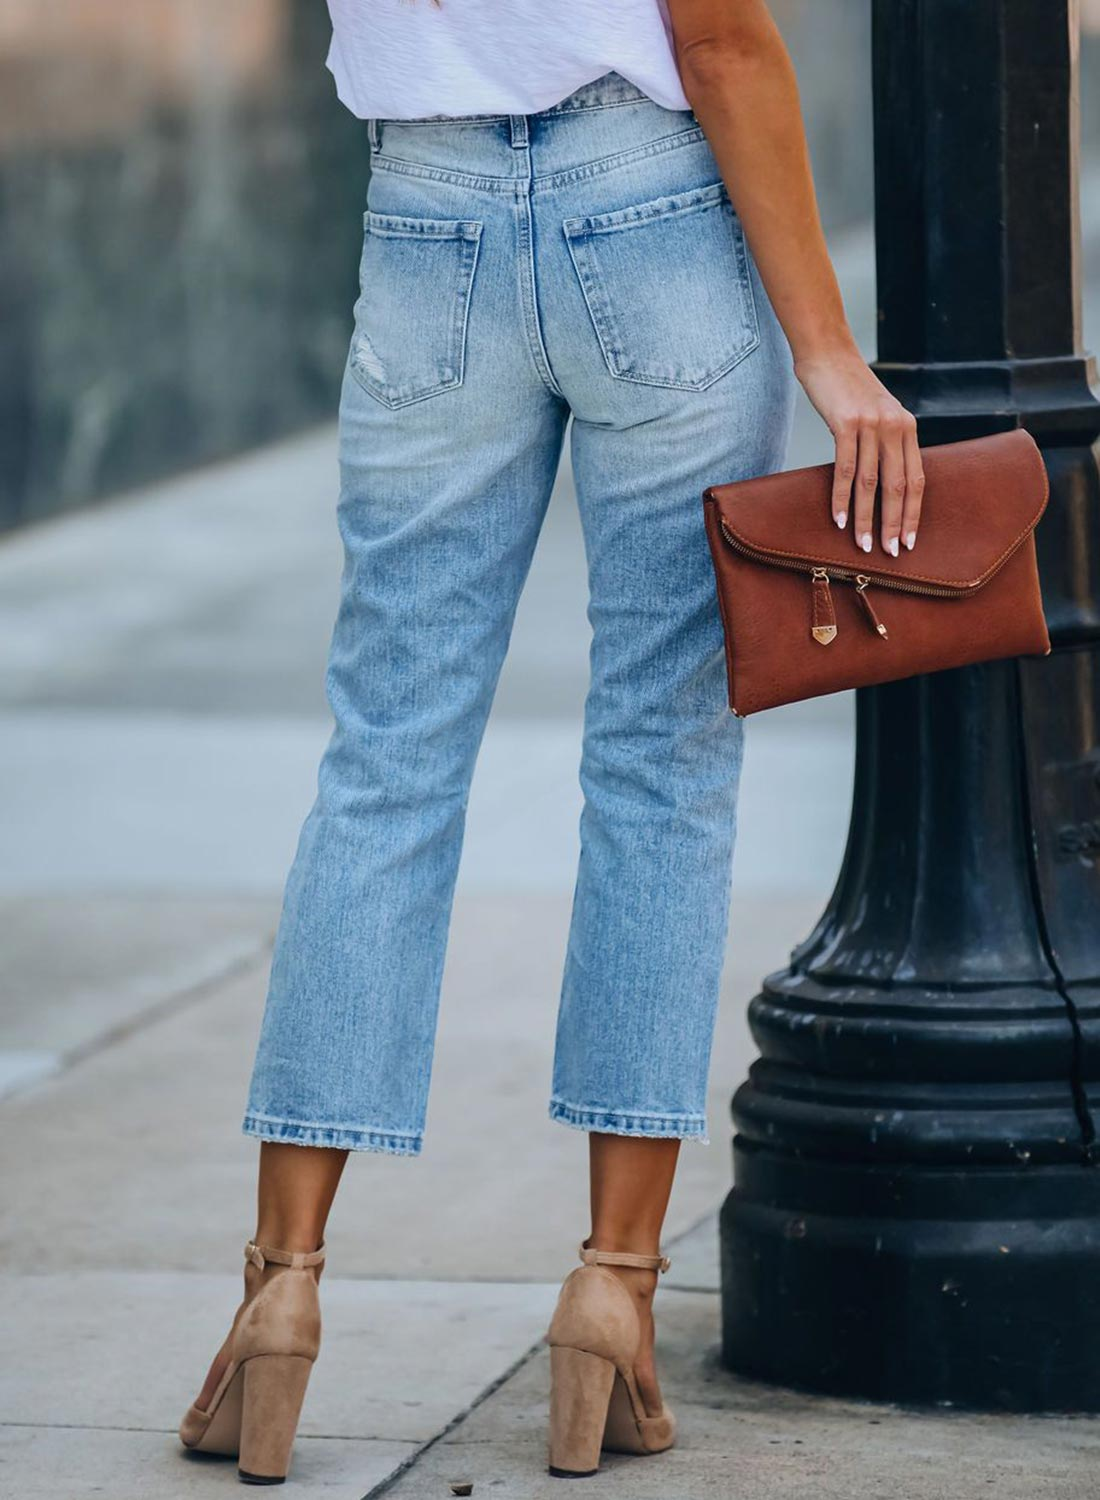 Light Colored Ankle Fashion Jeans